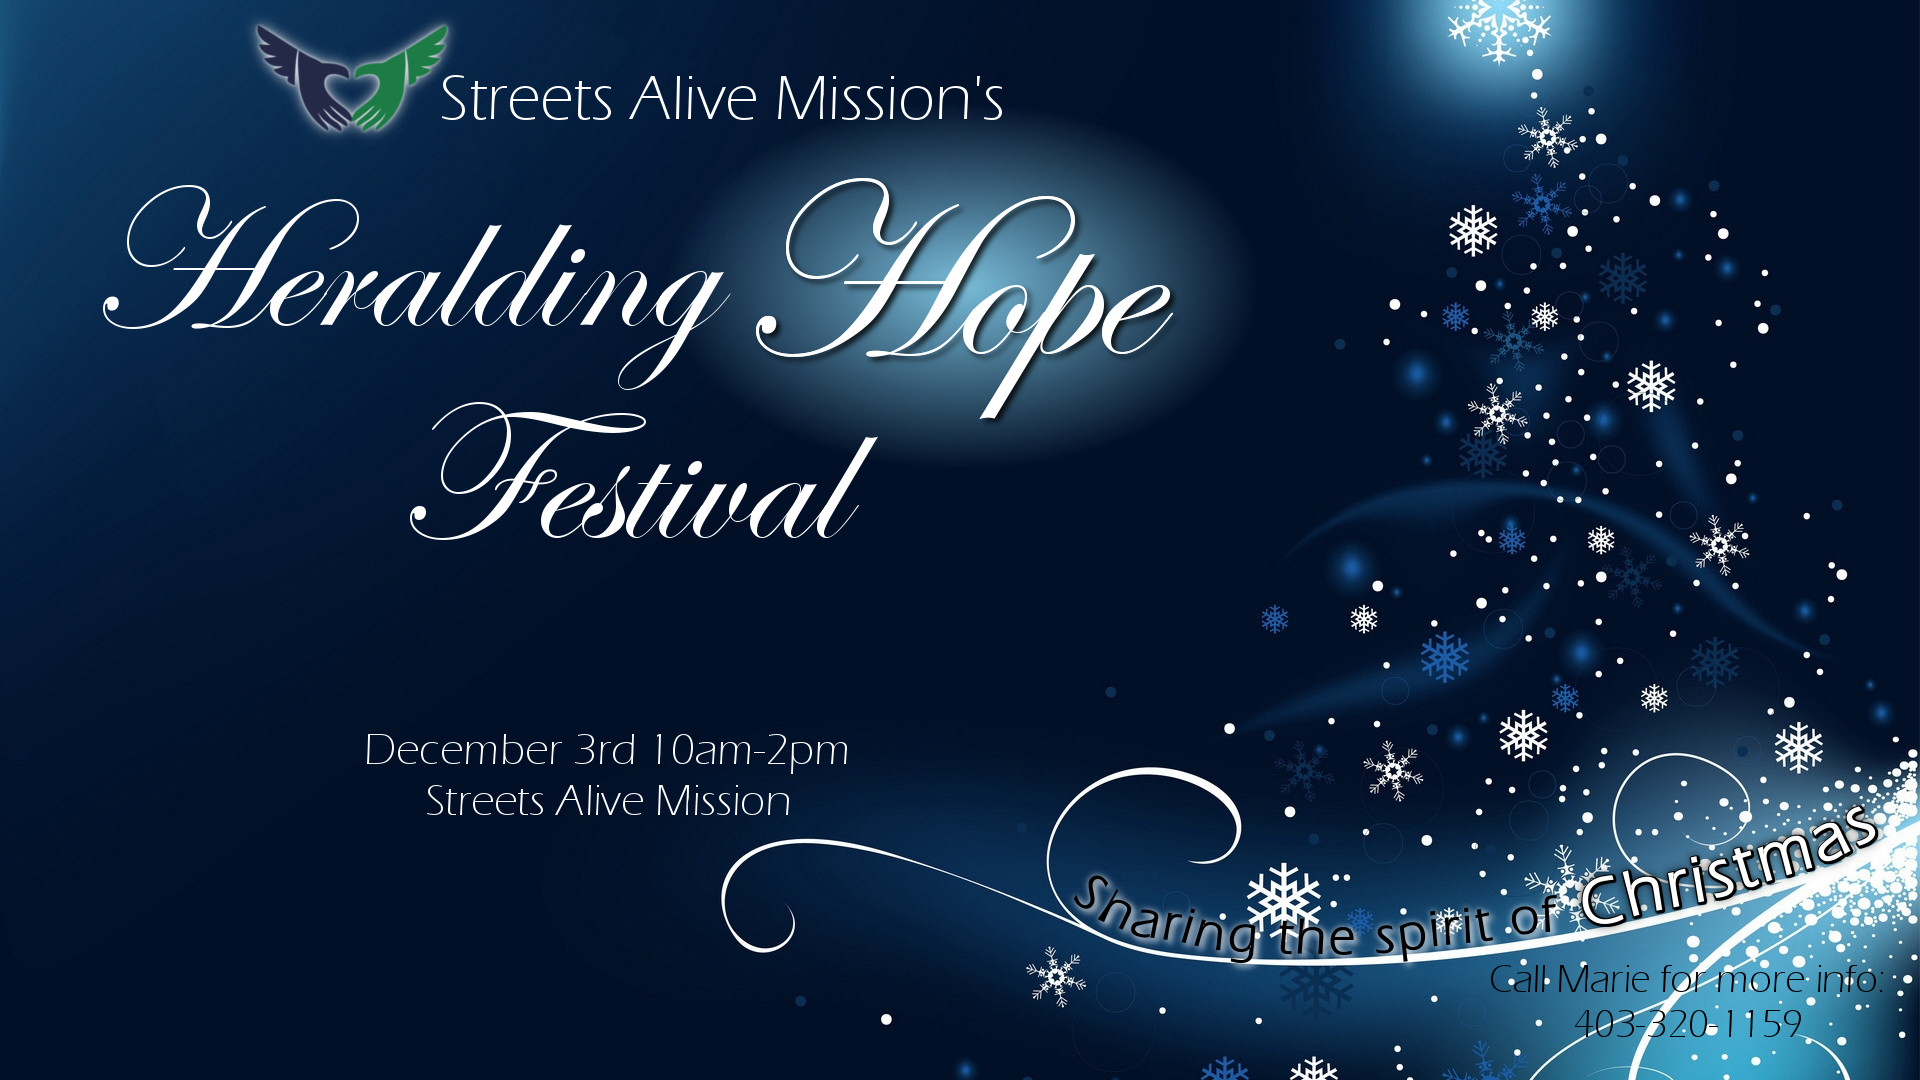 Heralding Hope Festival 2016 - Streets Alive Mission